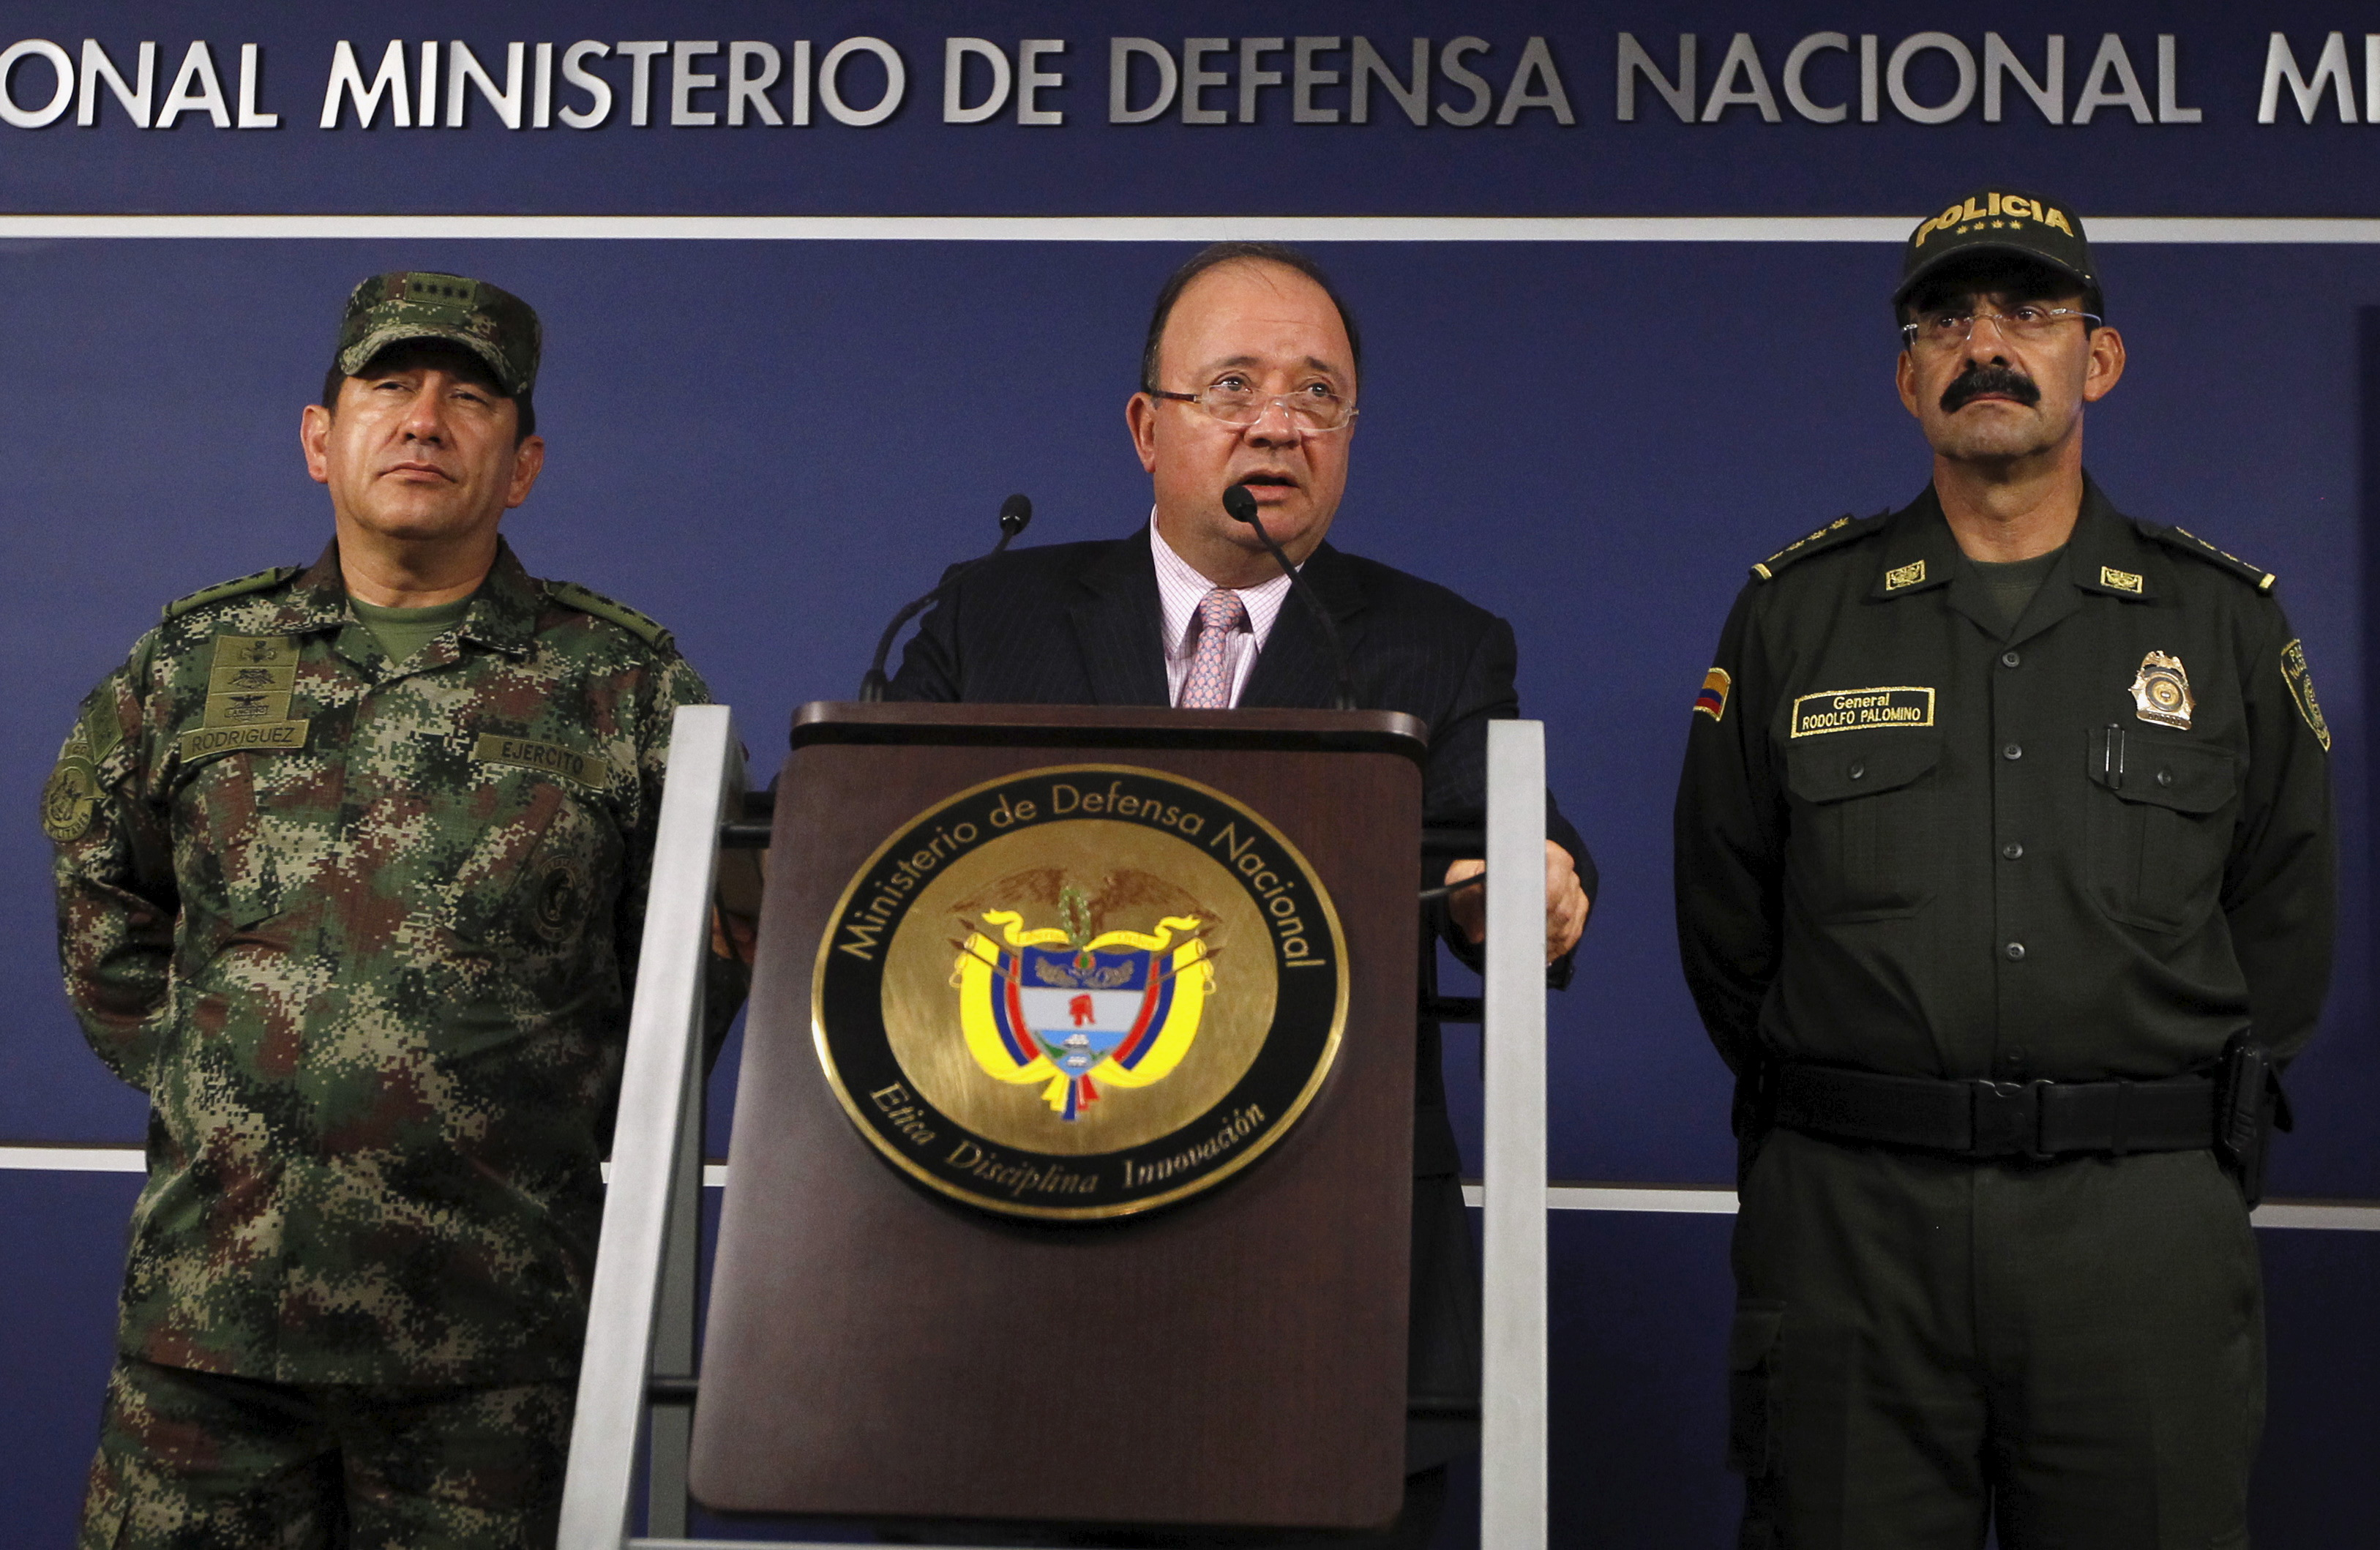 Colombia's Defense Minister Luis Carlos Villegas, center, speaks at a news conference in Bogota, Colombia Oct. 26, 2015